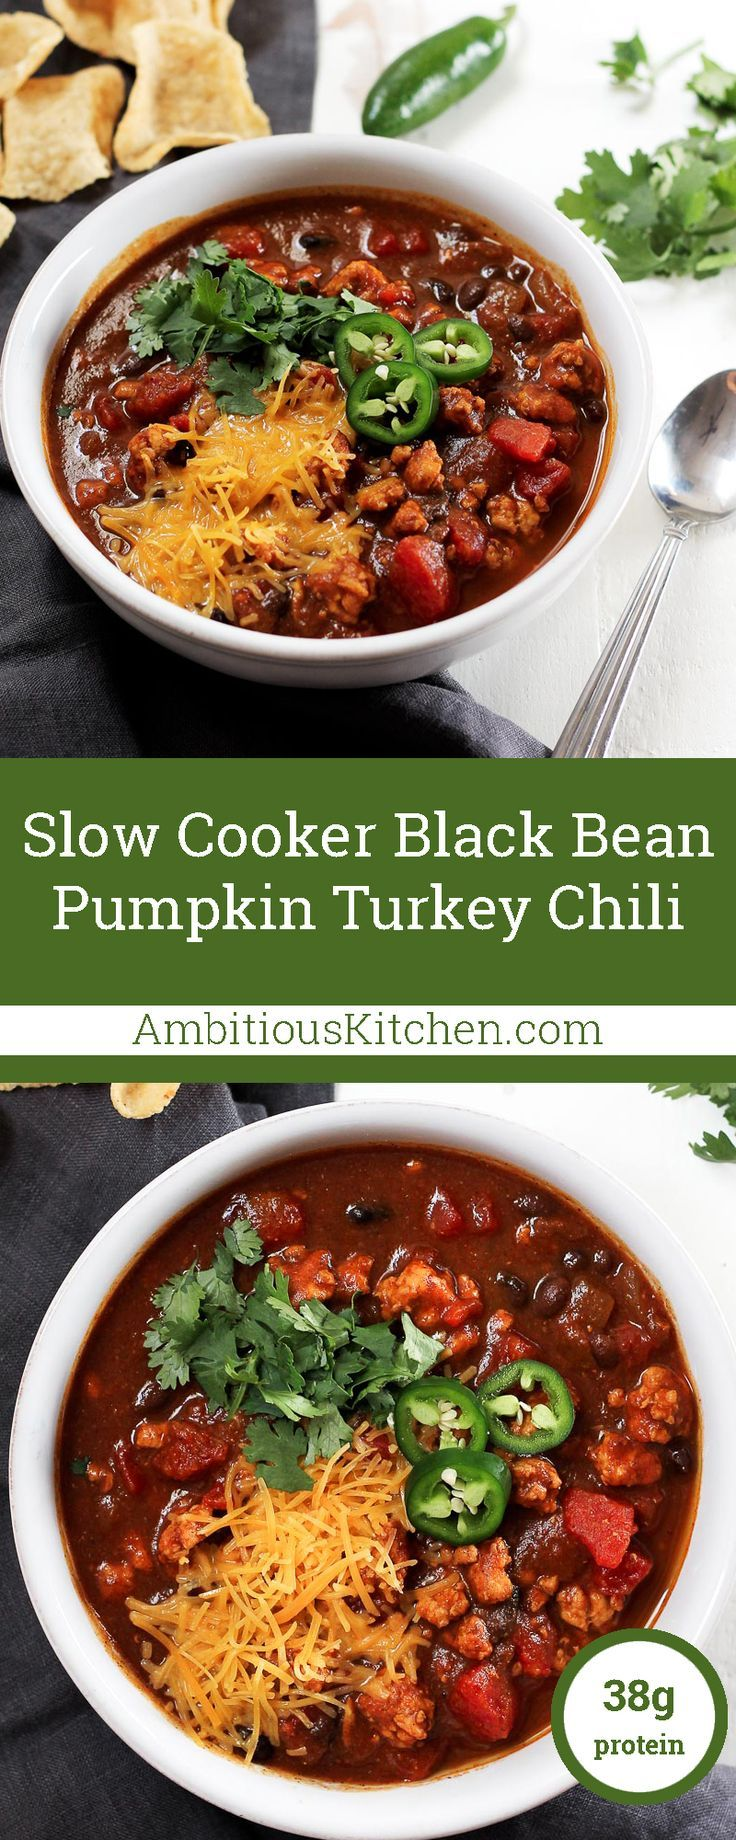 This black bean pumpkin turkey chili is both healthy and bursting with ...